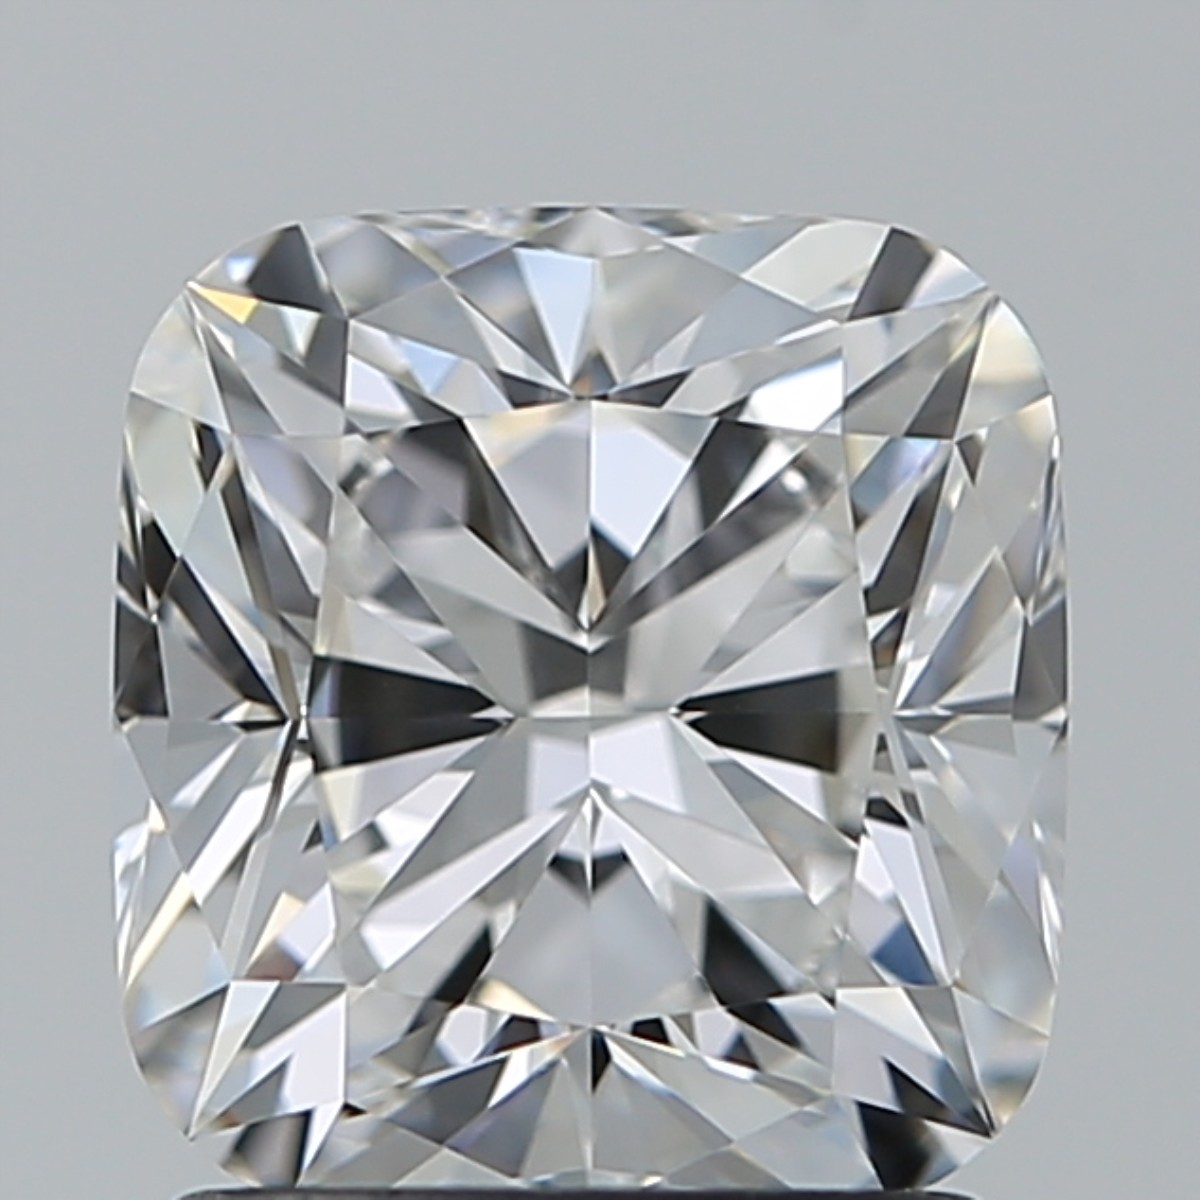 1.54 Carat Cushion Diamond (E/VS1)